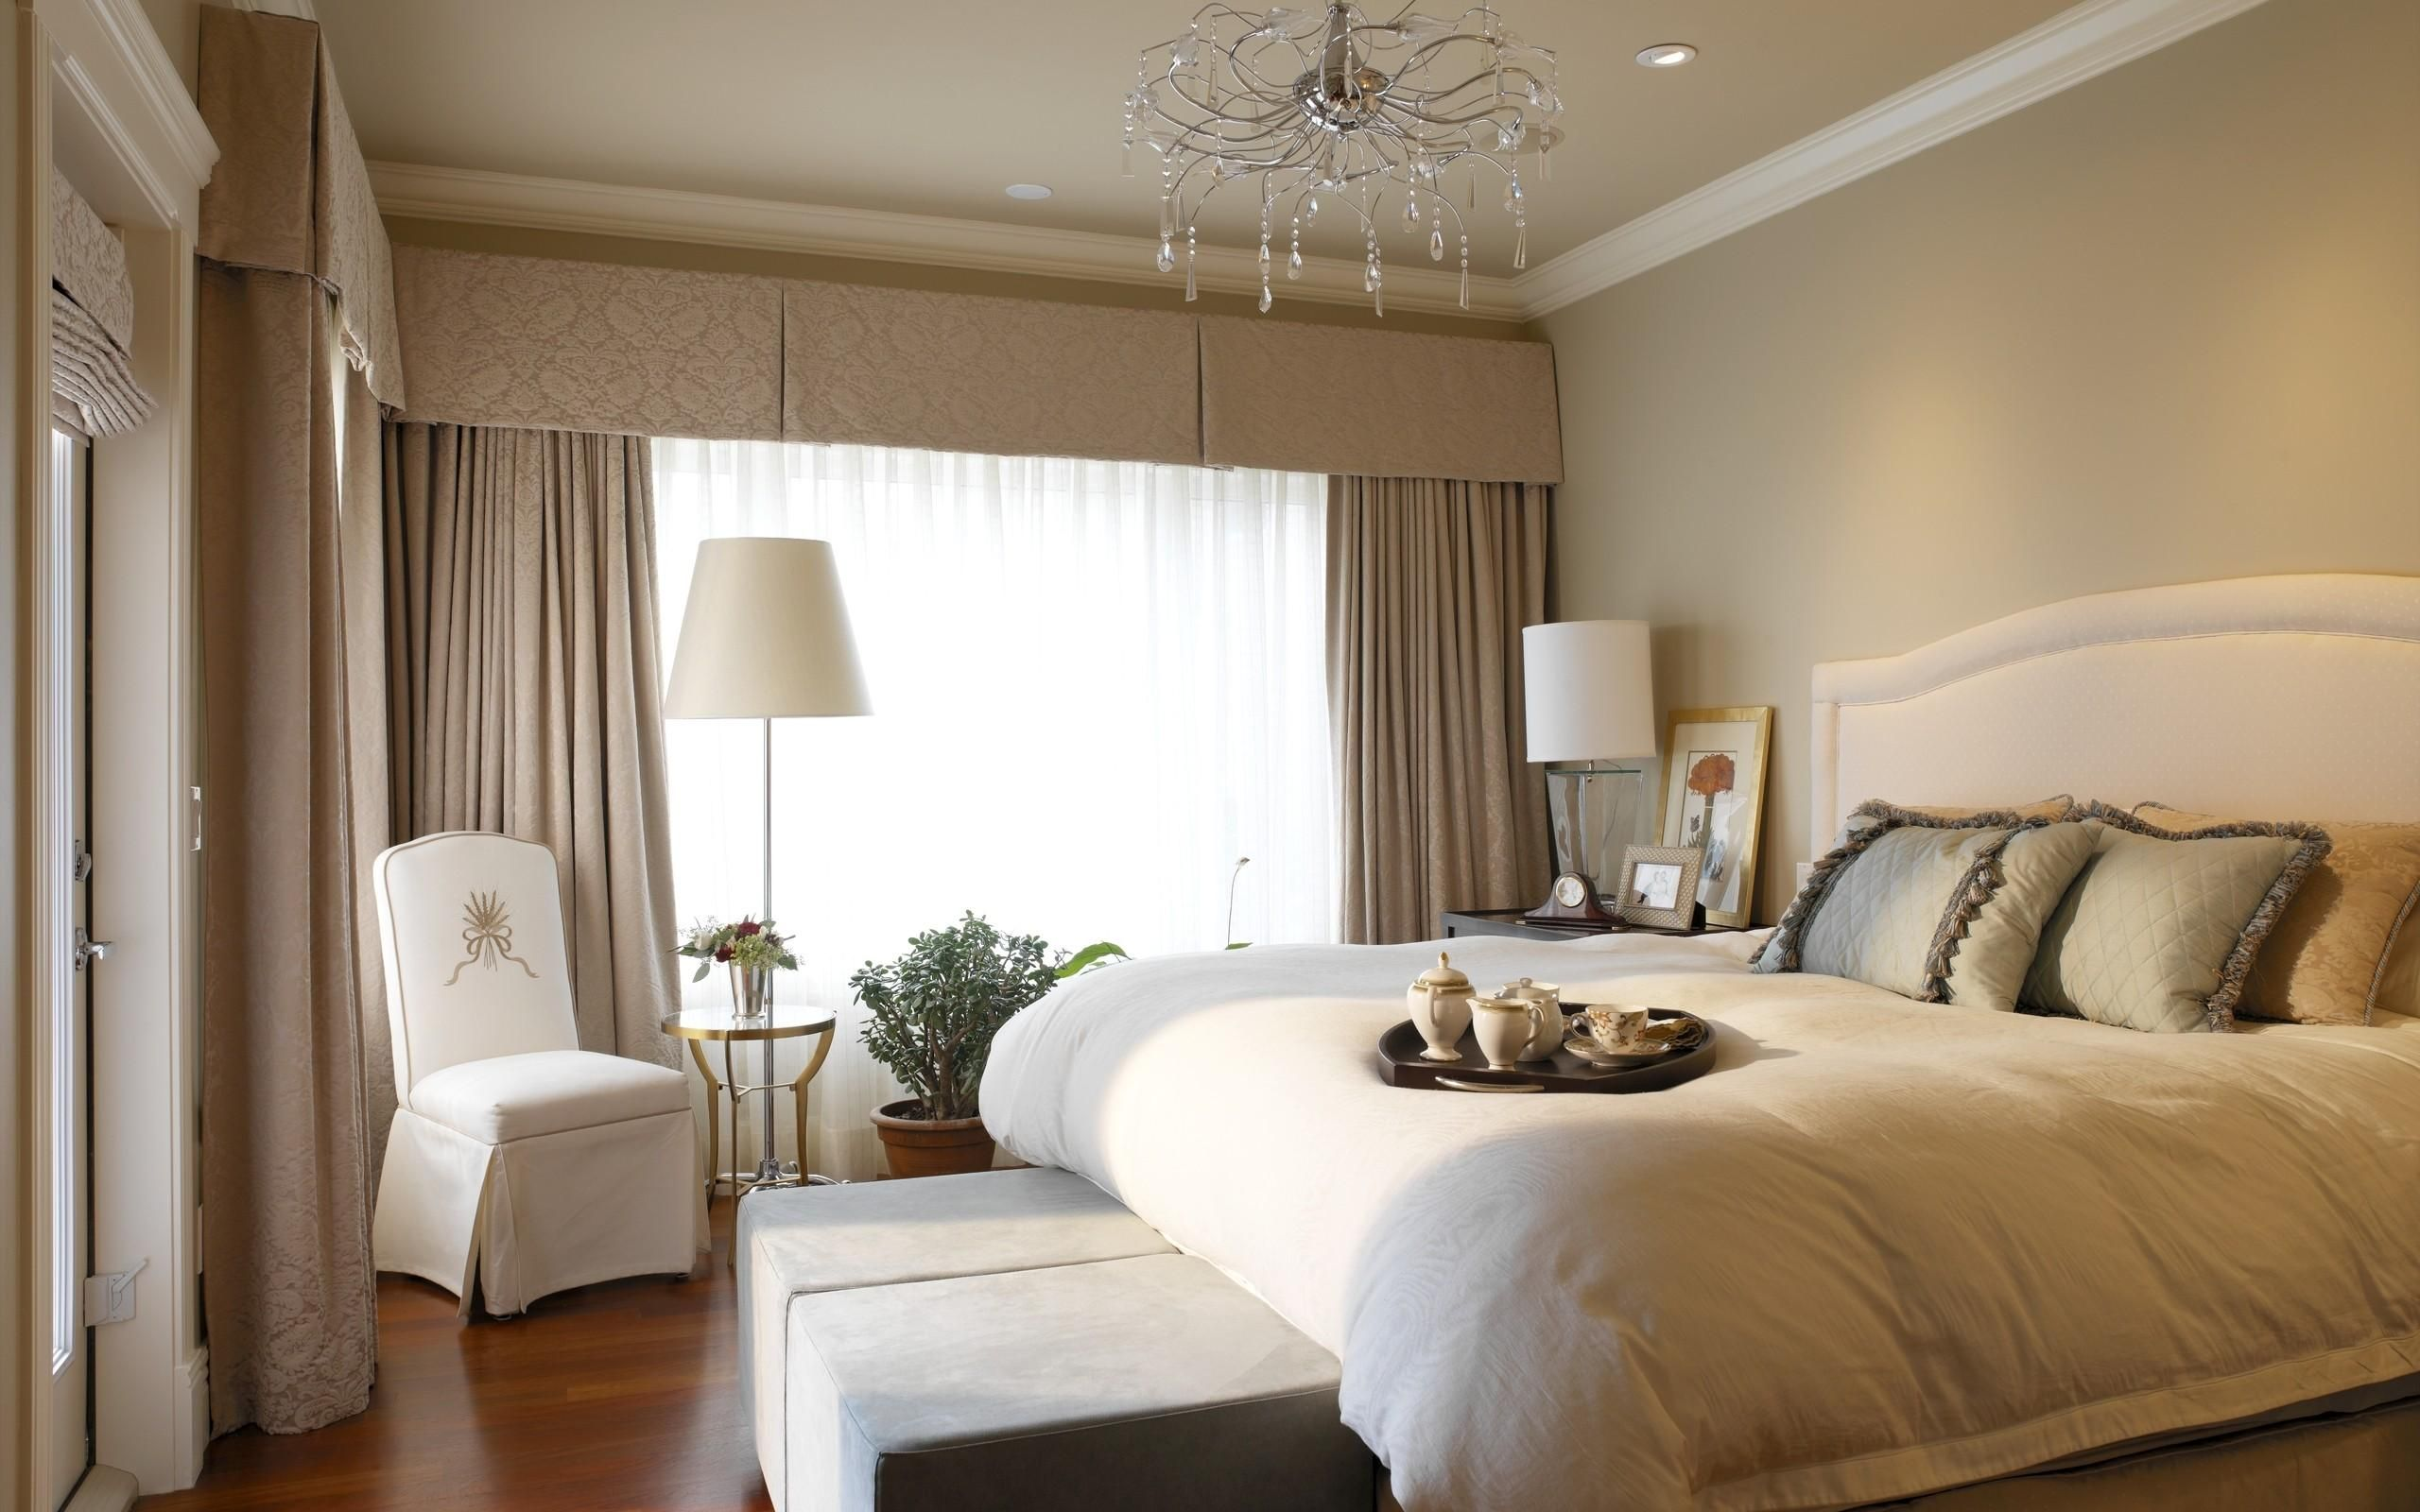 Window bedroom design  luxury bedroom design  love the cornice idea to extend illusion of